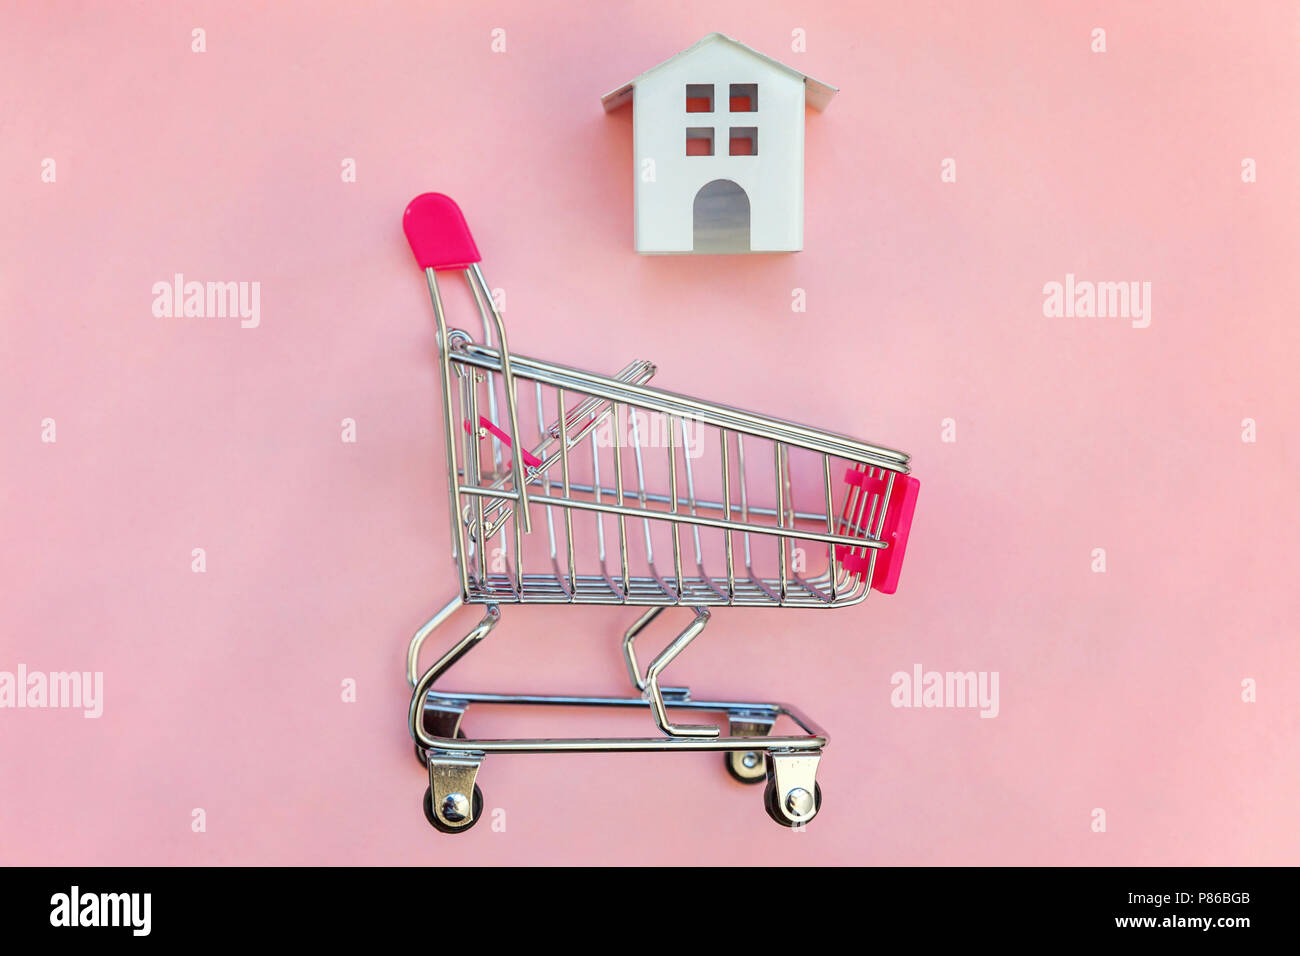 Small supermarket grocery push cart for shopping toy miniature white ...